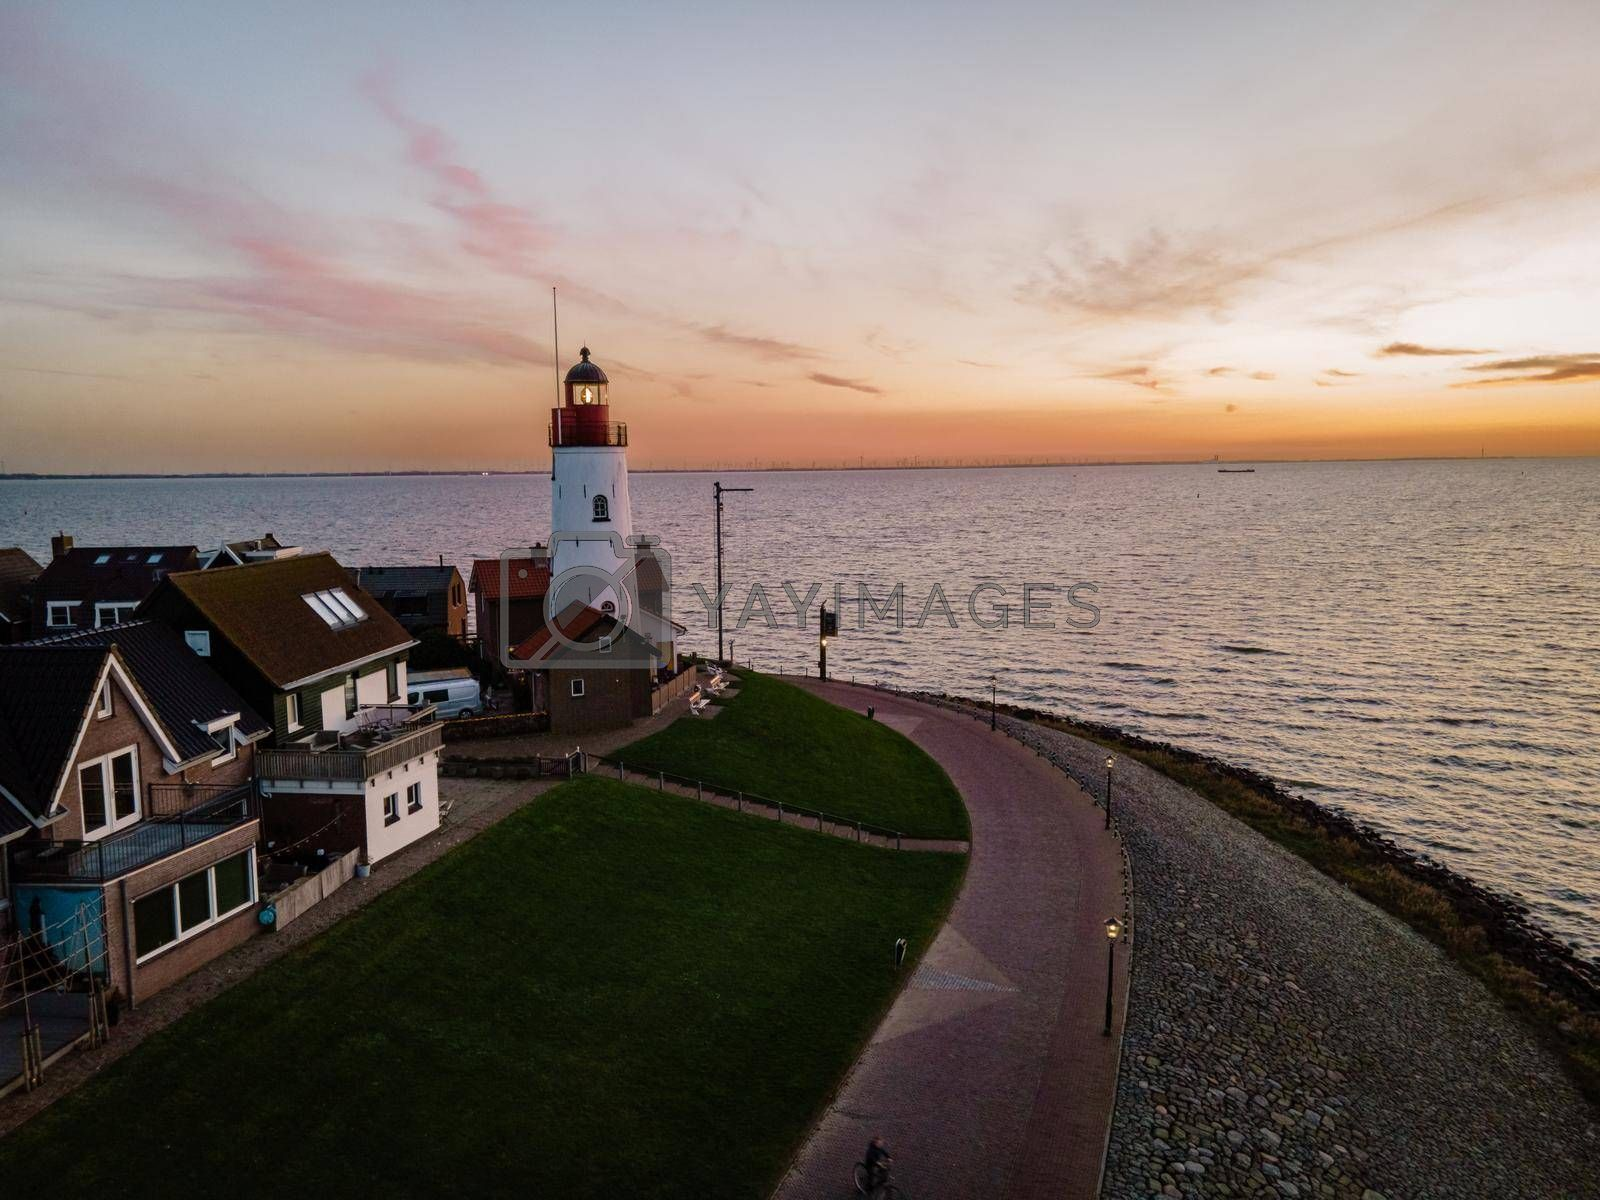 Urk lighthouse with old harbor during sunset, Urk is a small village by the lake Ijsselmeer in the Netherlands Flevoland area by fokkebok